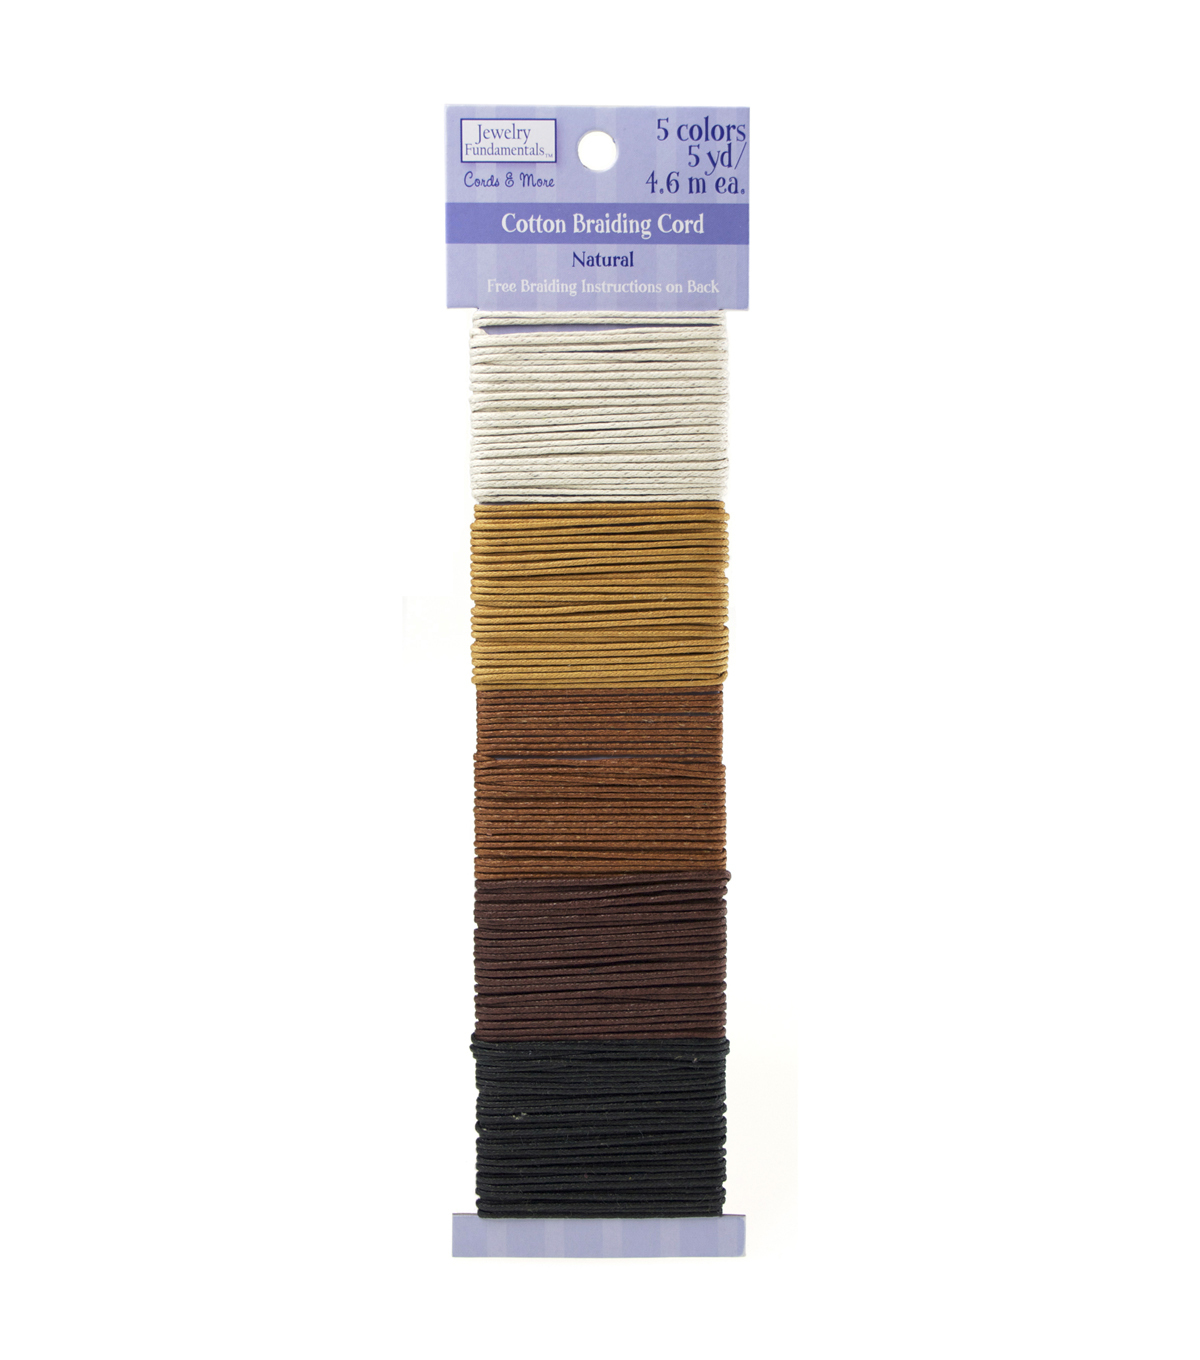 Jewelry Fundamentals Cords & More-Cotton Cord Value Pack, Natural